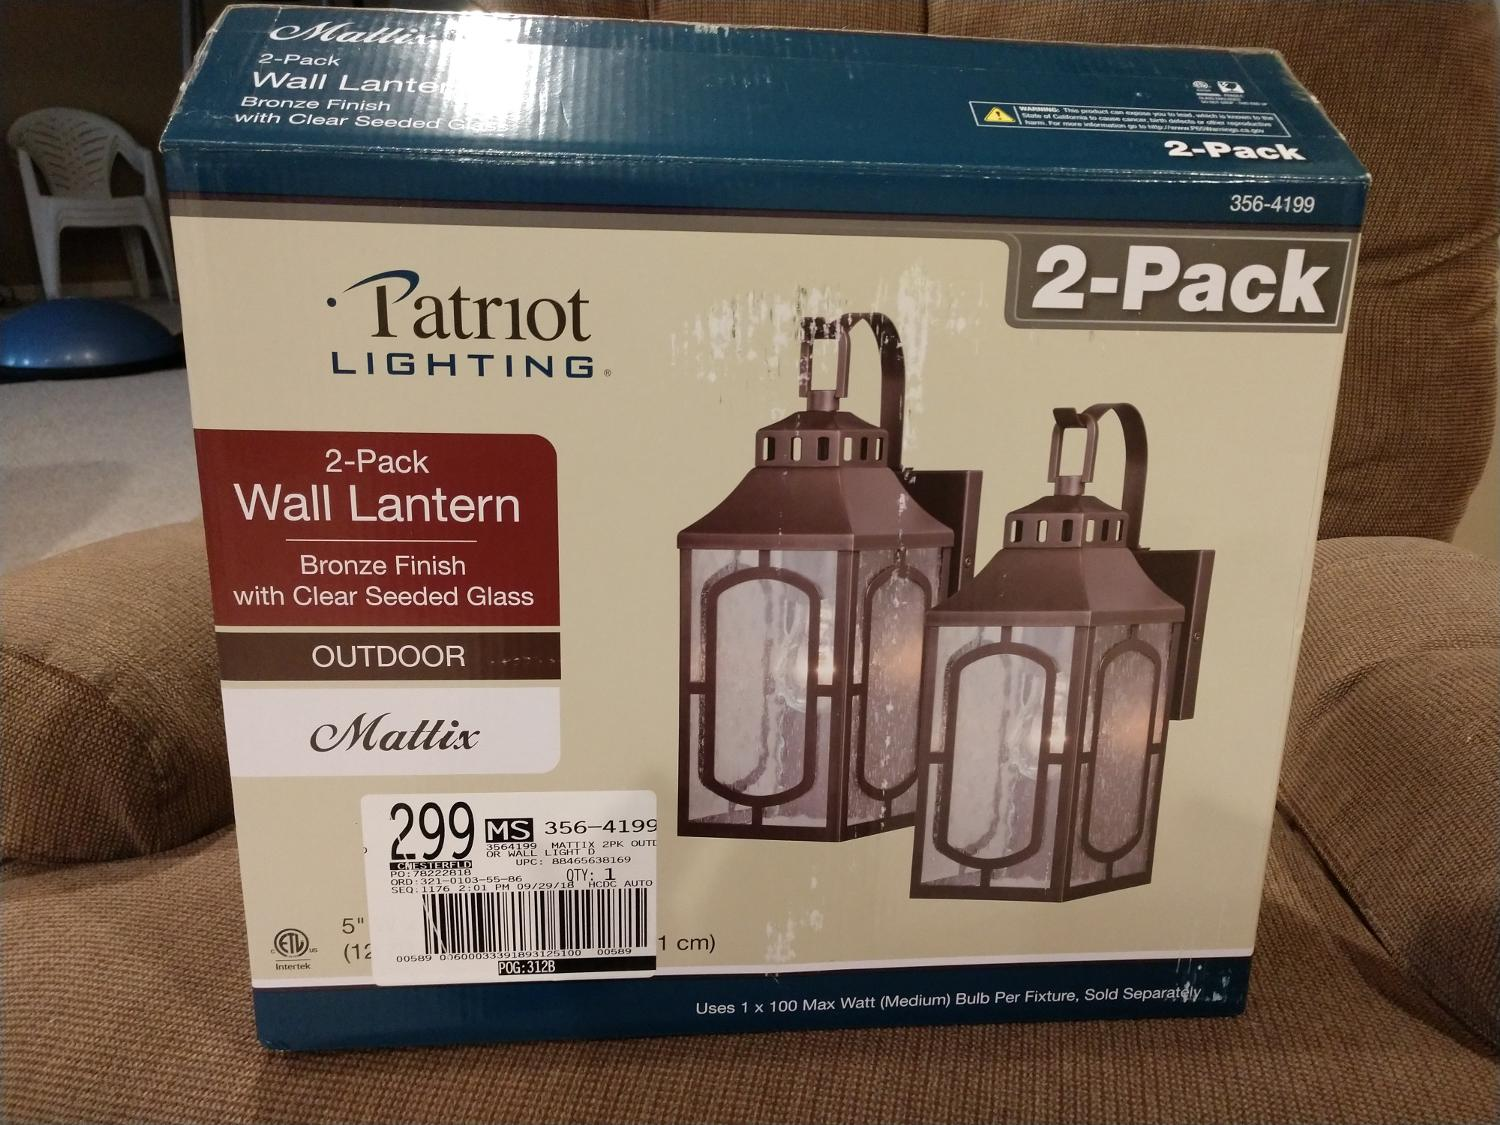 One outdoor light fixture